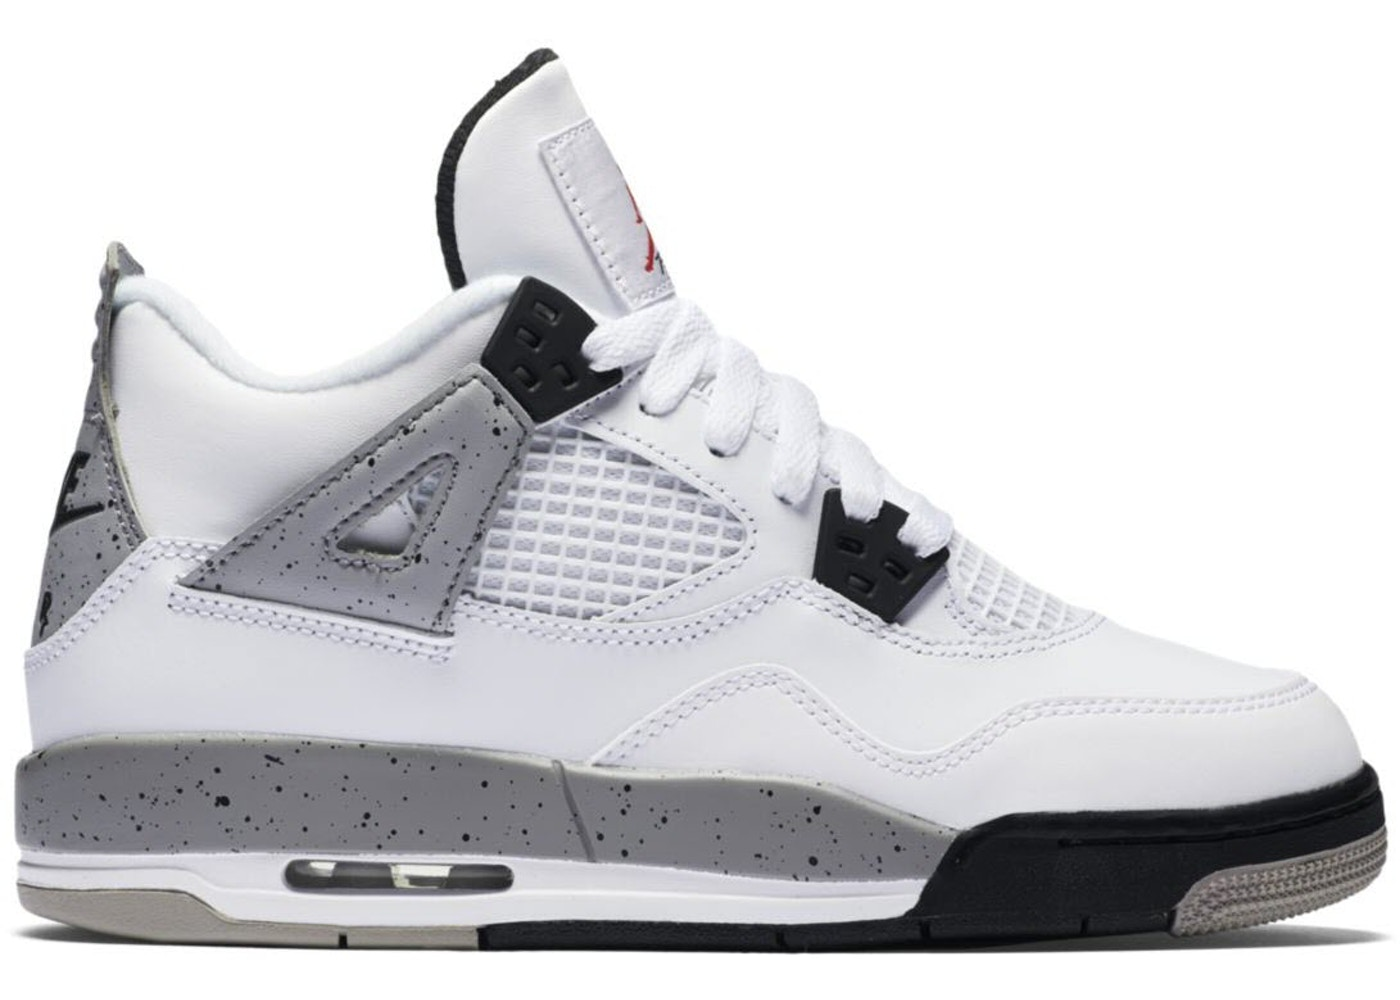 buy popular cf7c9 b018c ... Buy Air Jordan 4 Shoes Deadstock Sneakers ...